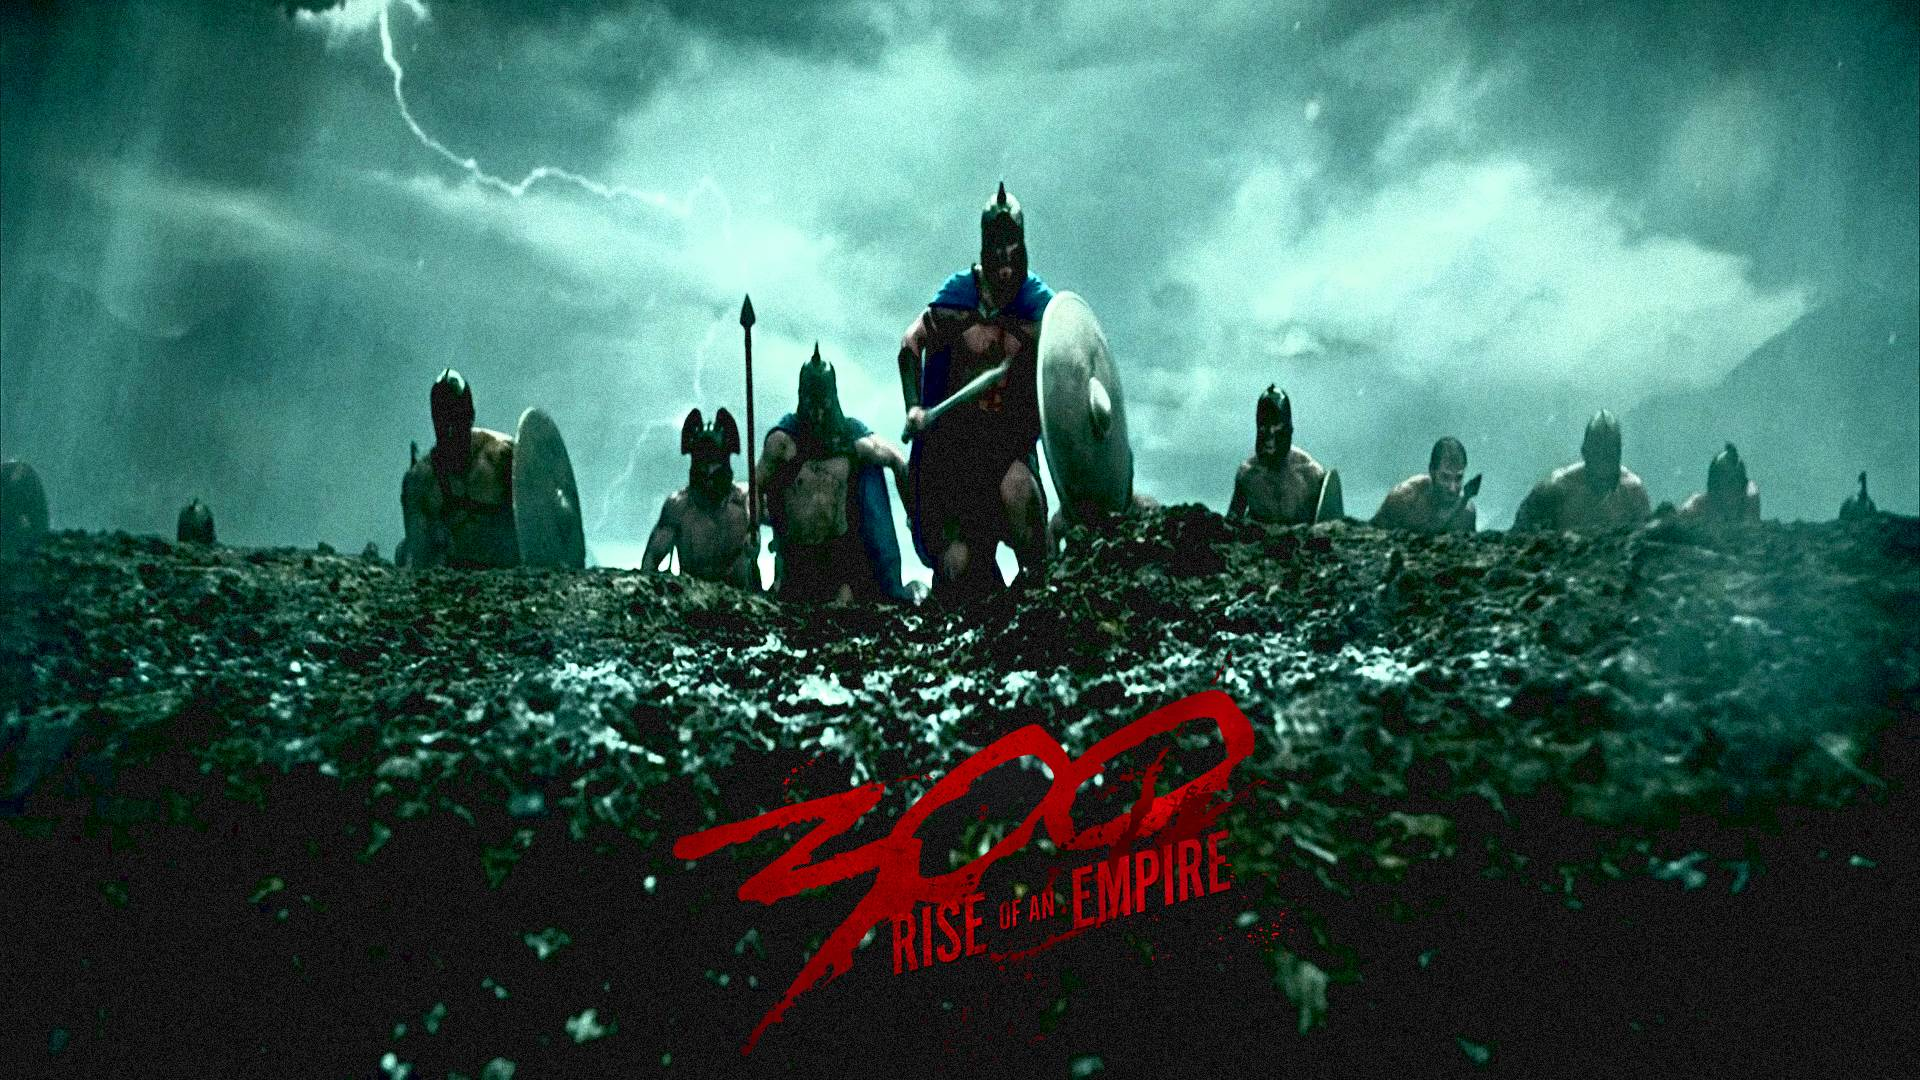 300: Rise of an Empire HQ wallpapers